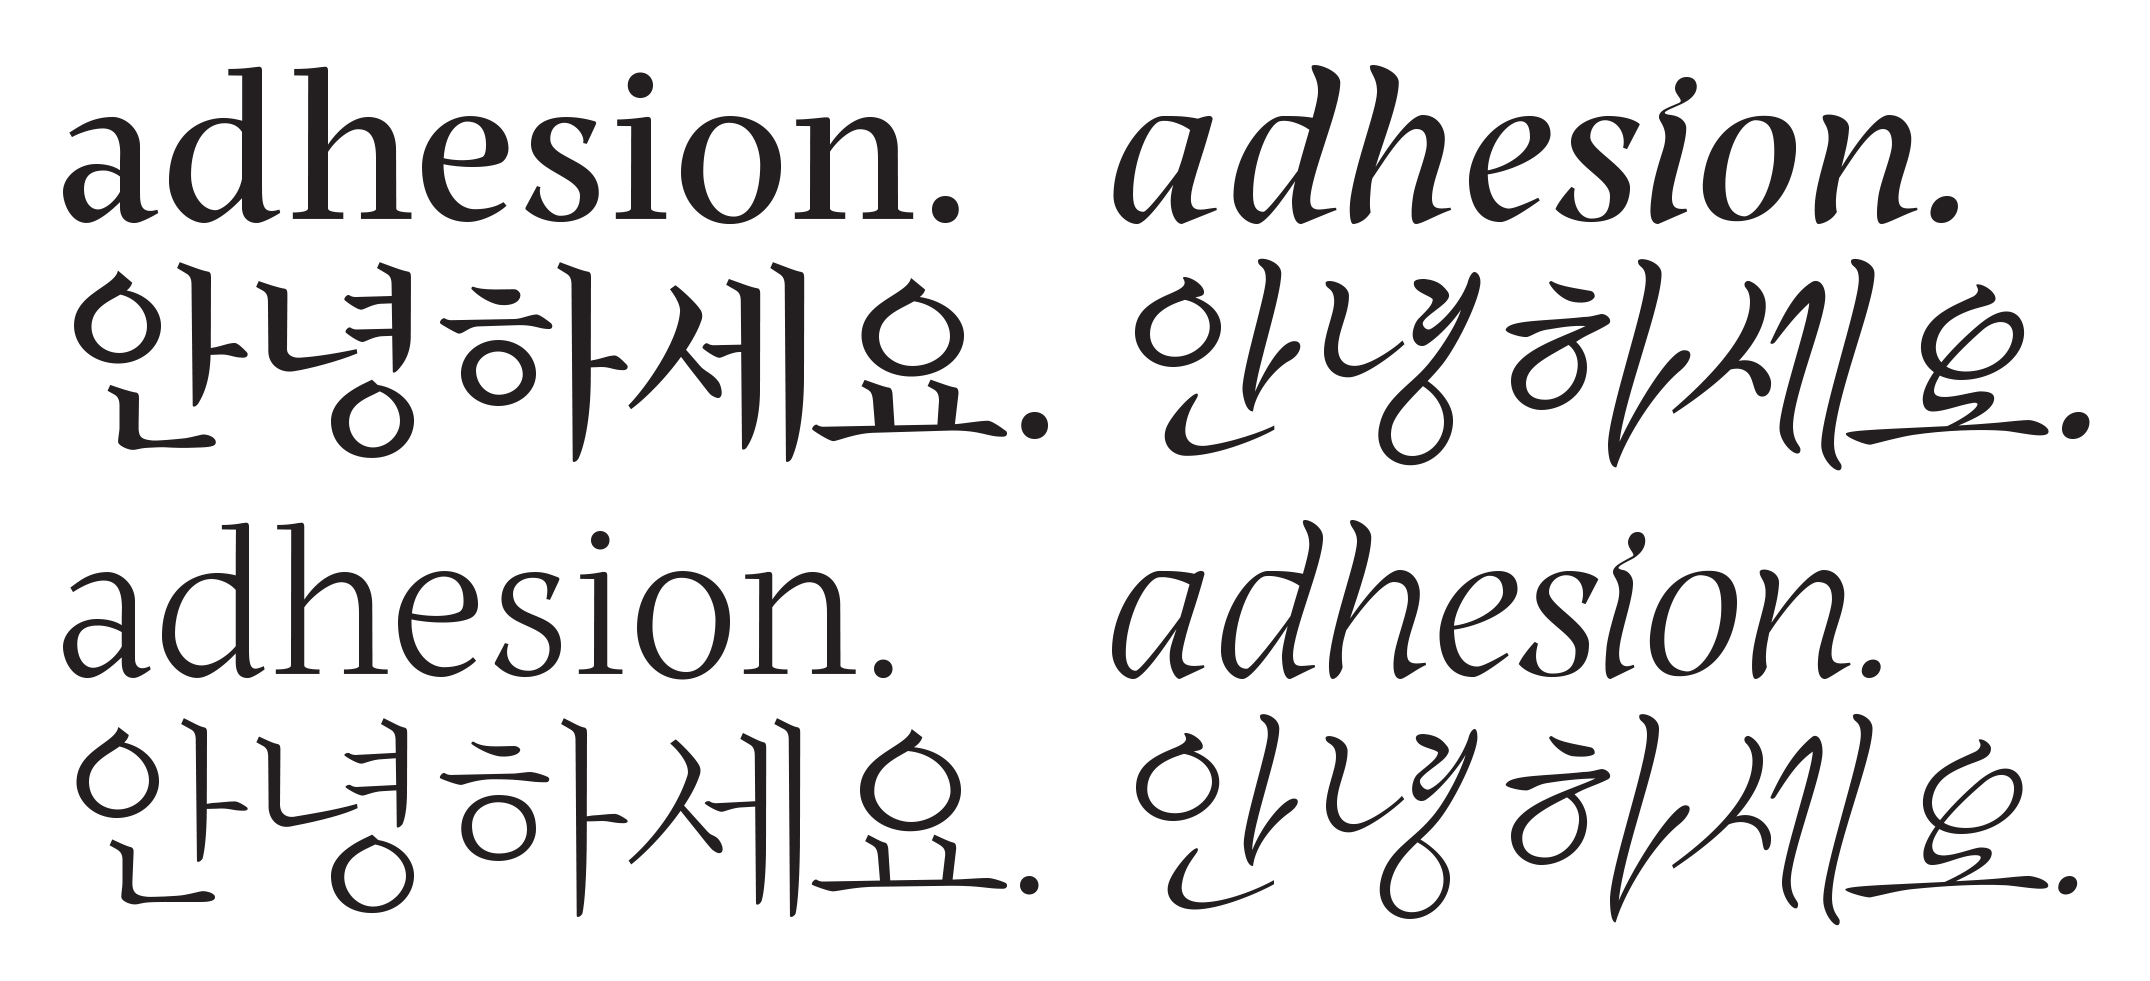 Aaron Bells Korean Typeface PDF Borrows From Native Cursive Writing To Differentiate The Secondary